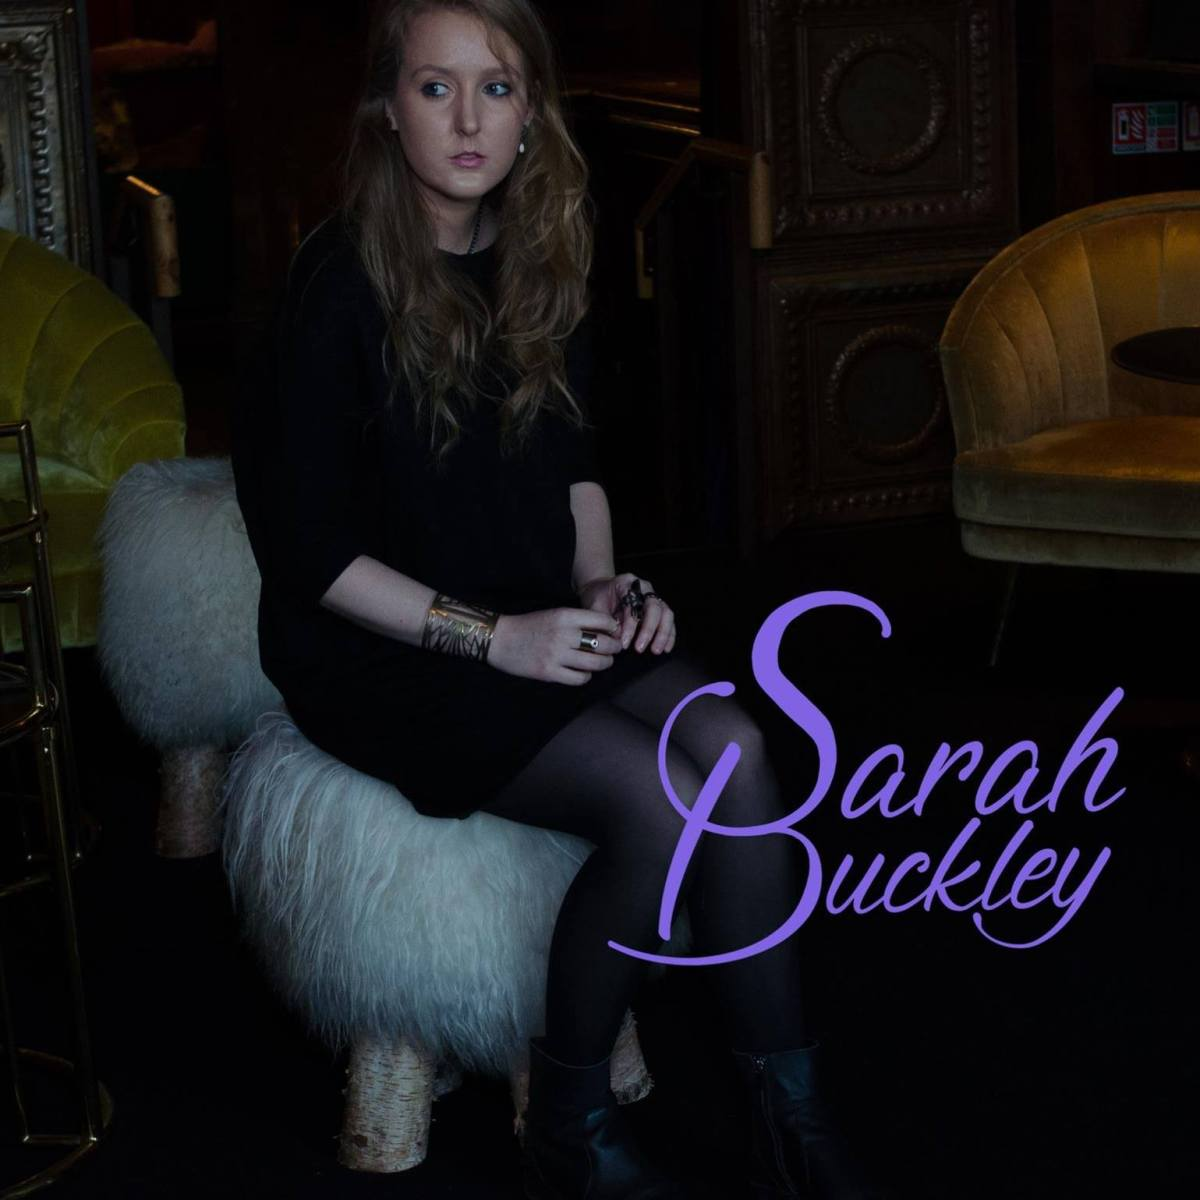 Sarah Buckley Makes A Smashing Debut With Single 'You've Got Me'